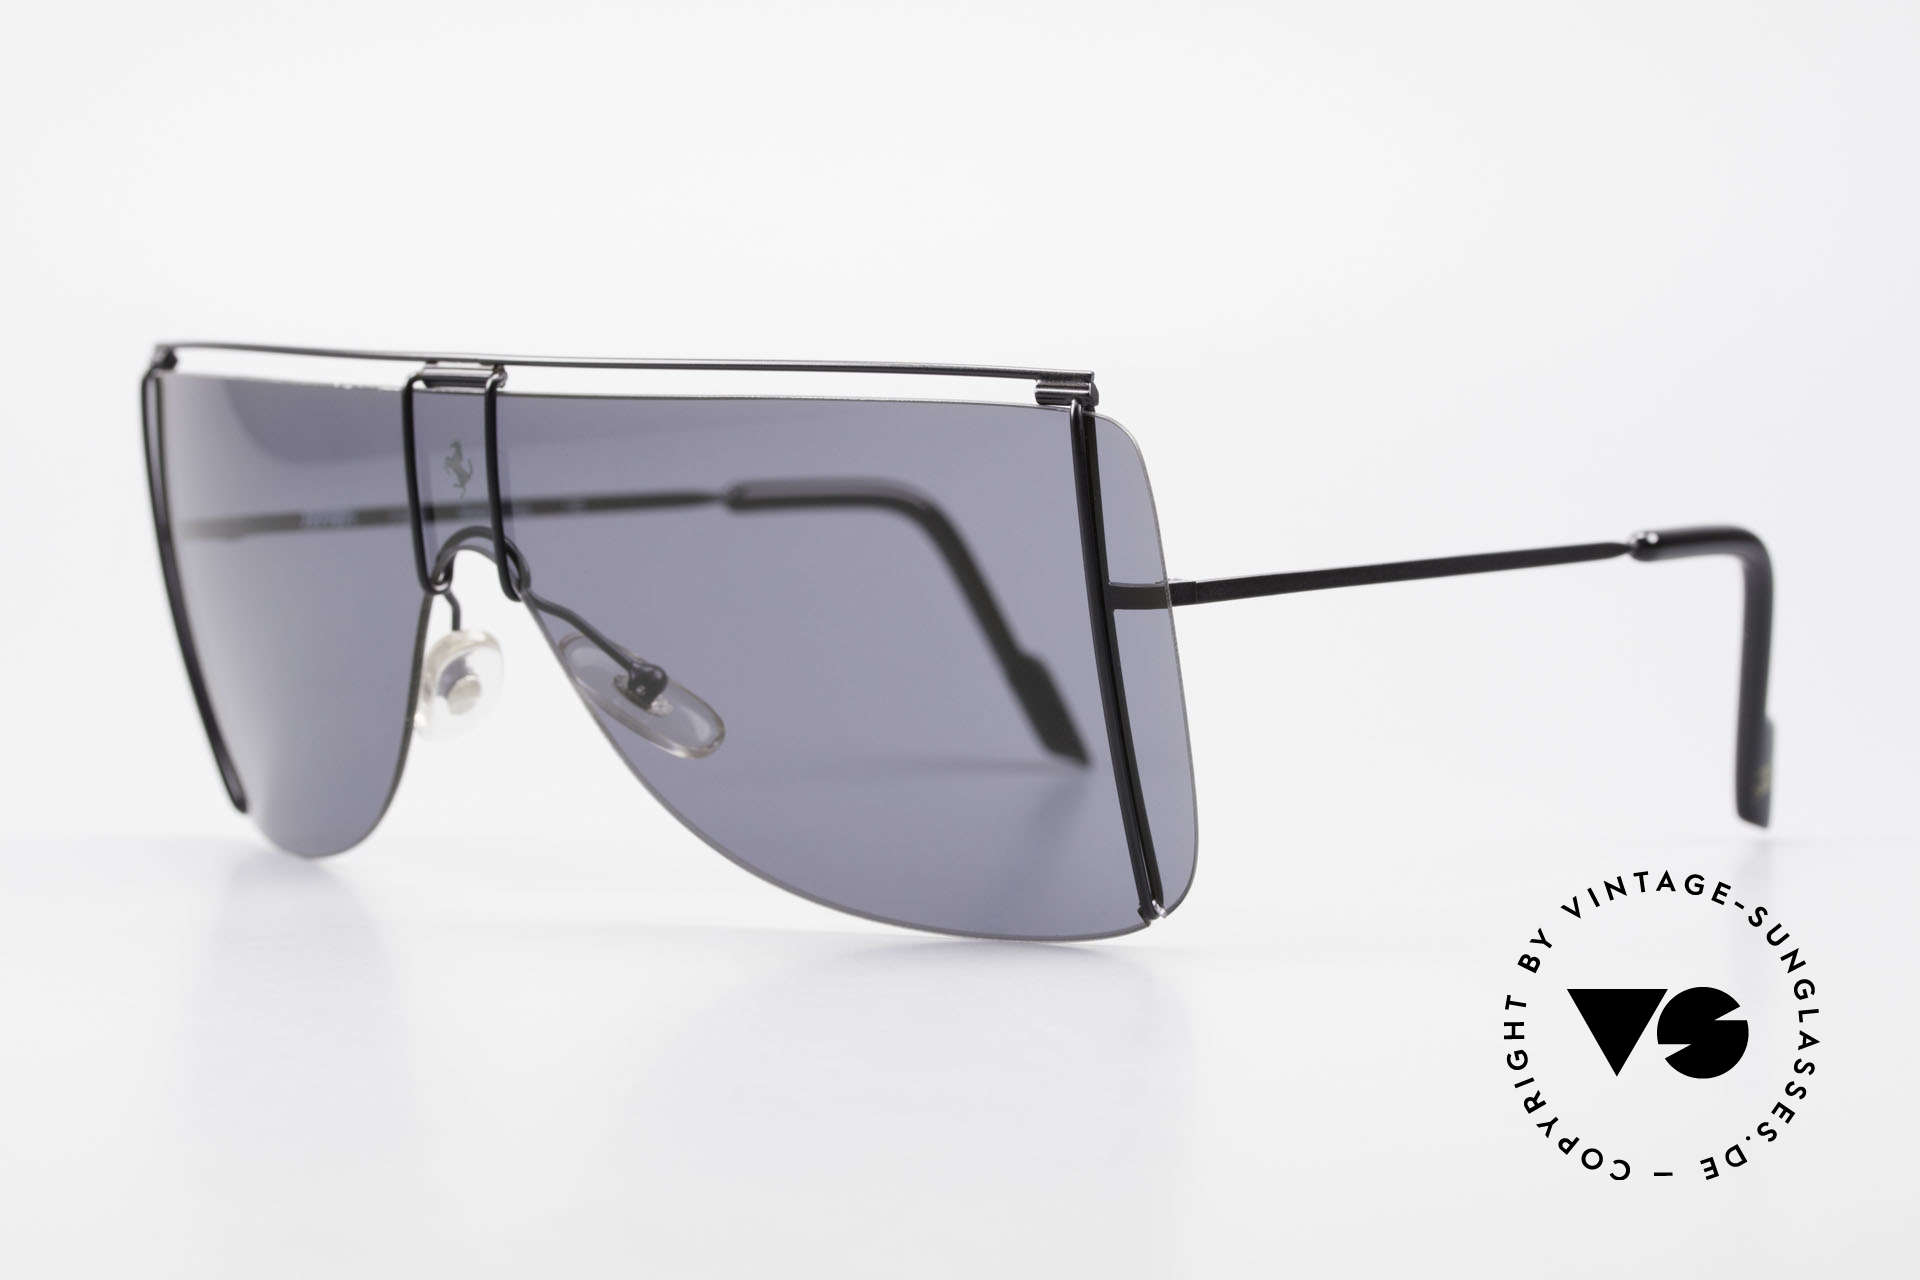 Ferrari F20/S Luxury Sunglasses Kylie Jenner, a very stylish and very elegant fashion accessory, Made for Men and Women